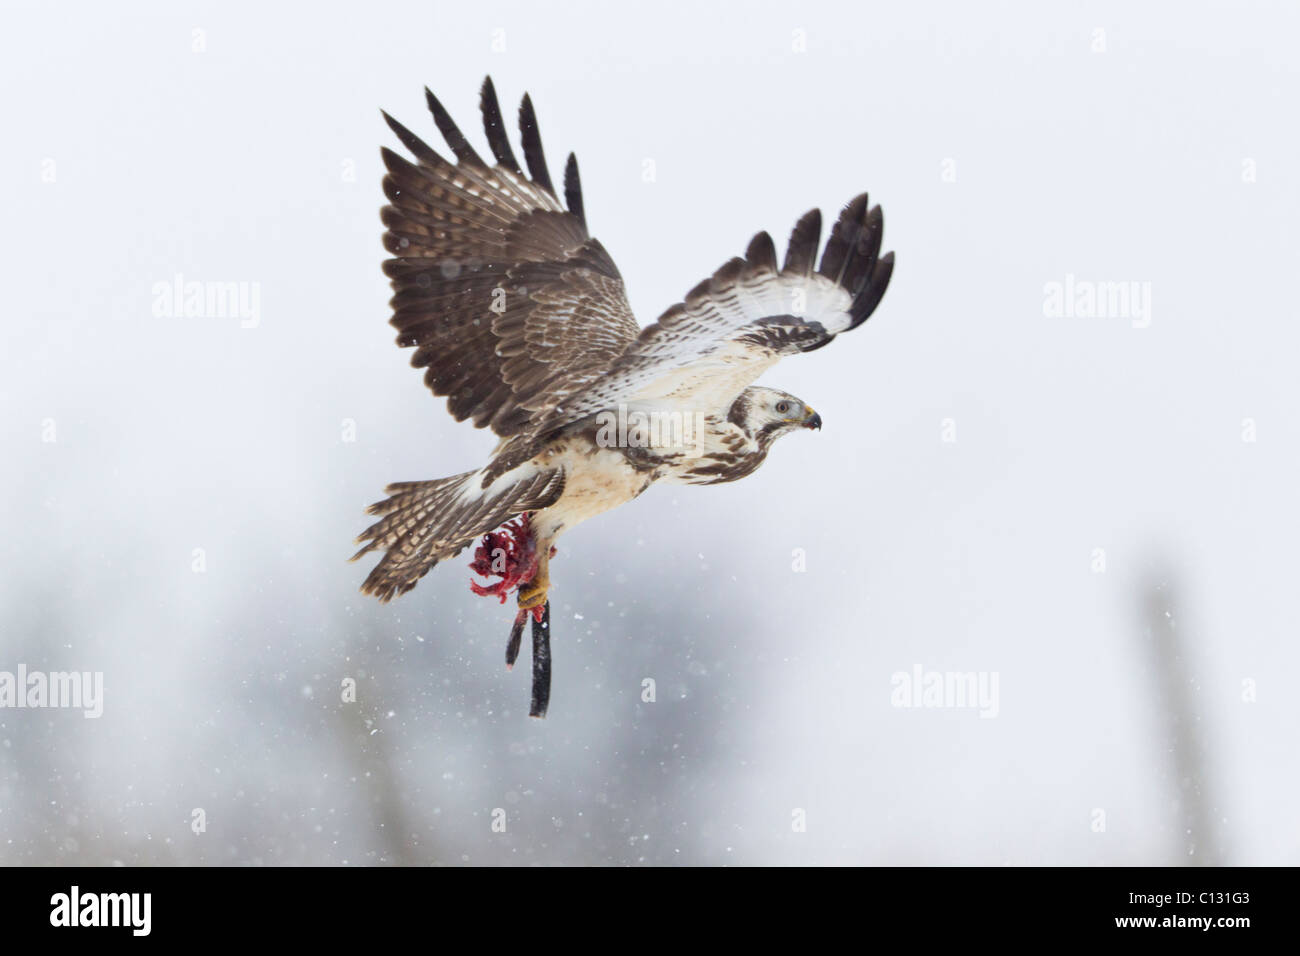 Common Buzzard (Buteo buteo), in flight, carrying prey in talons - Stock Image